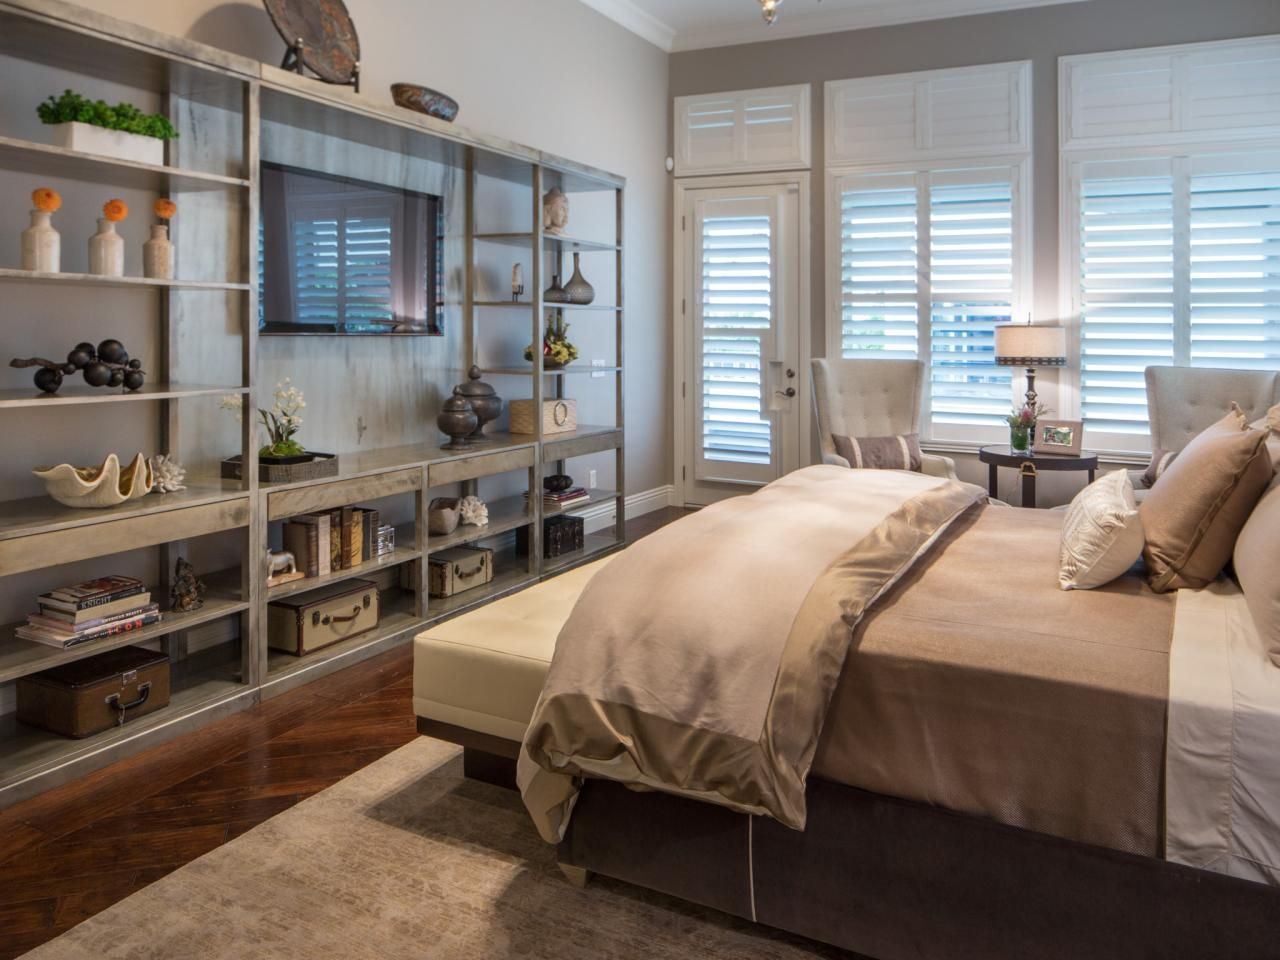 25 amazing makeovers by the property brothers hgtv shows experts property brothers at home. Black Bedroom Furniture Sets. Home Design Ideas